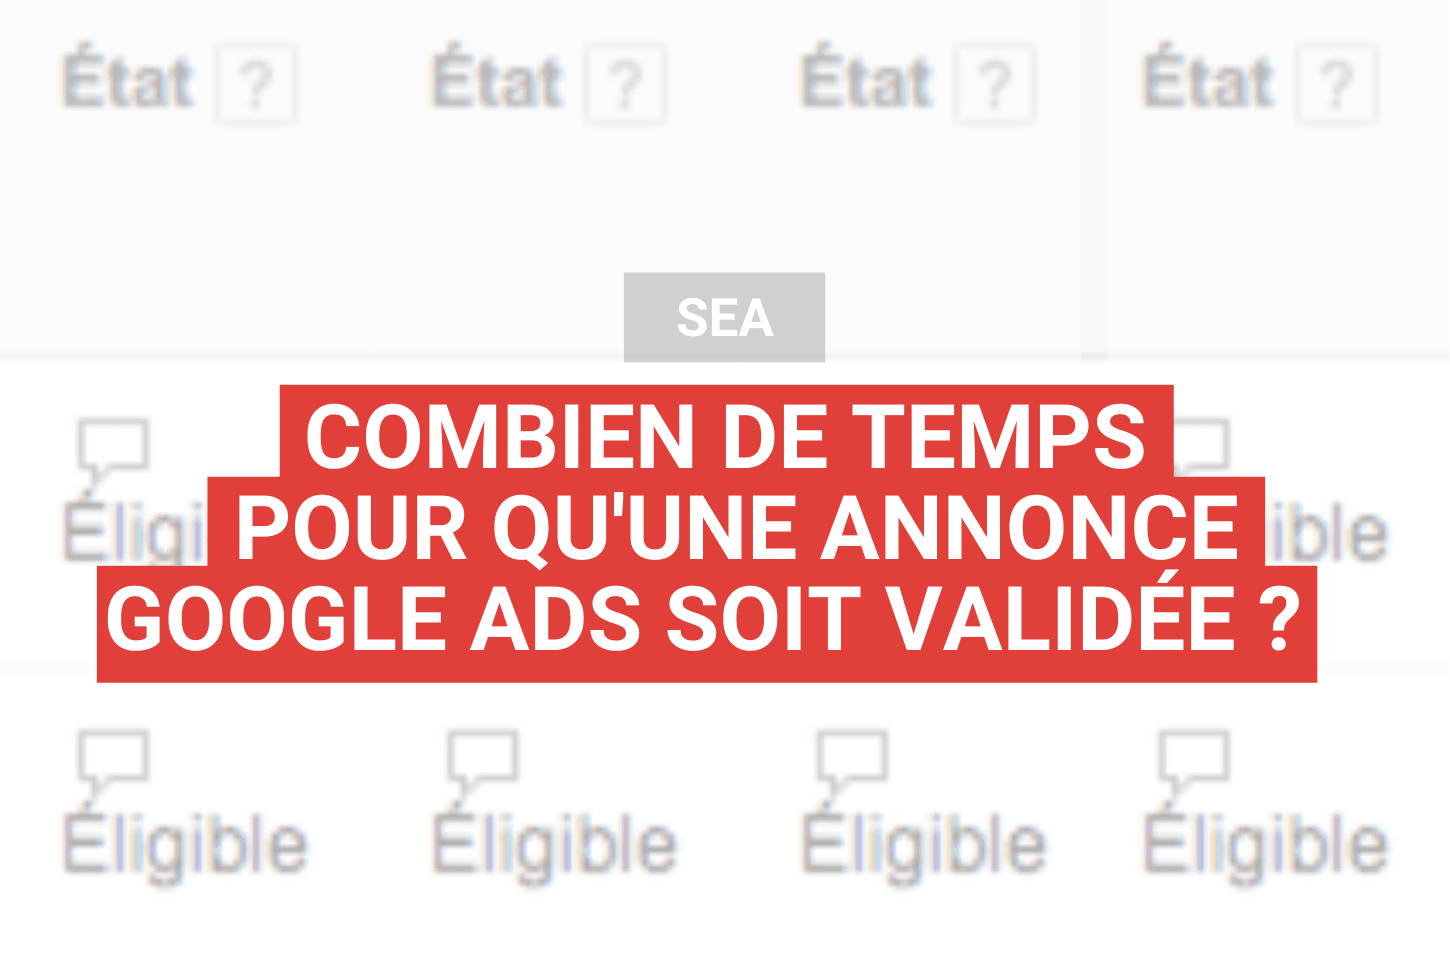 How long does it take to validate a Google Ad?